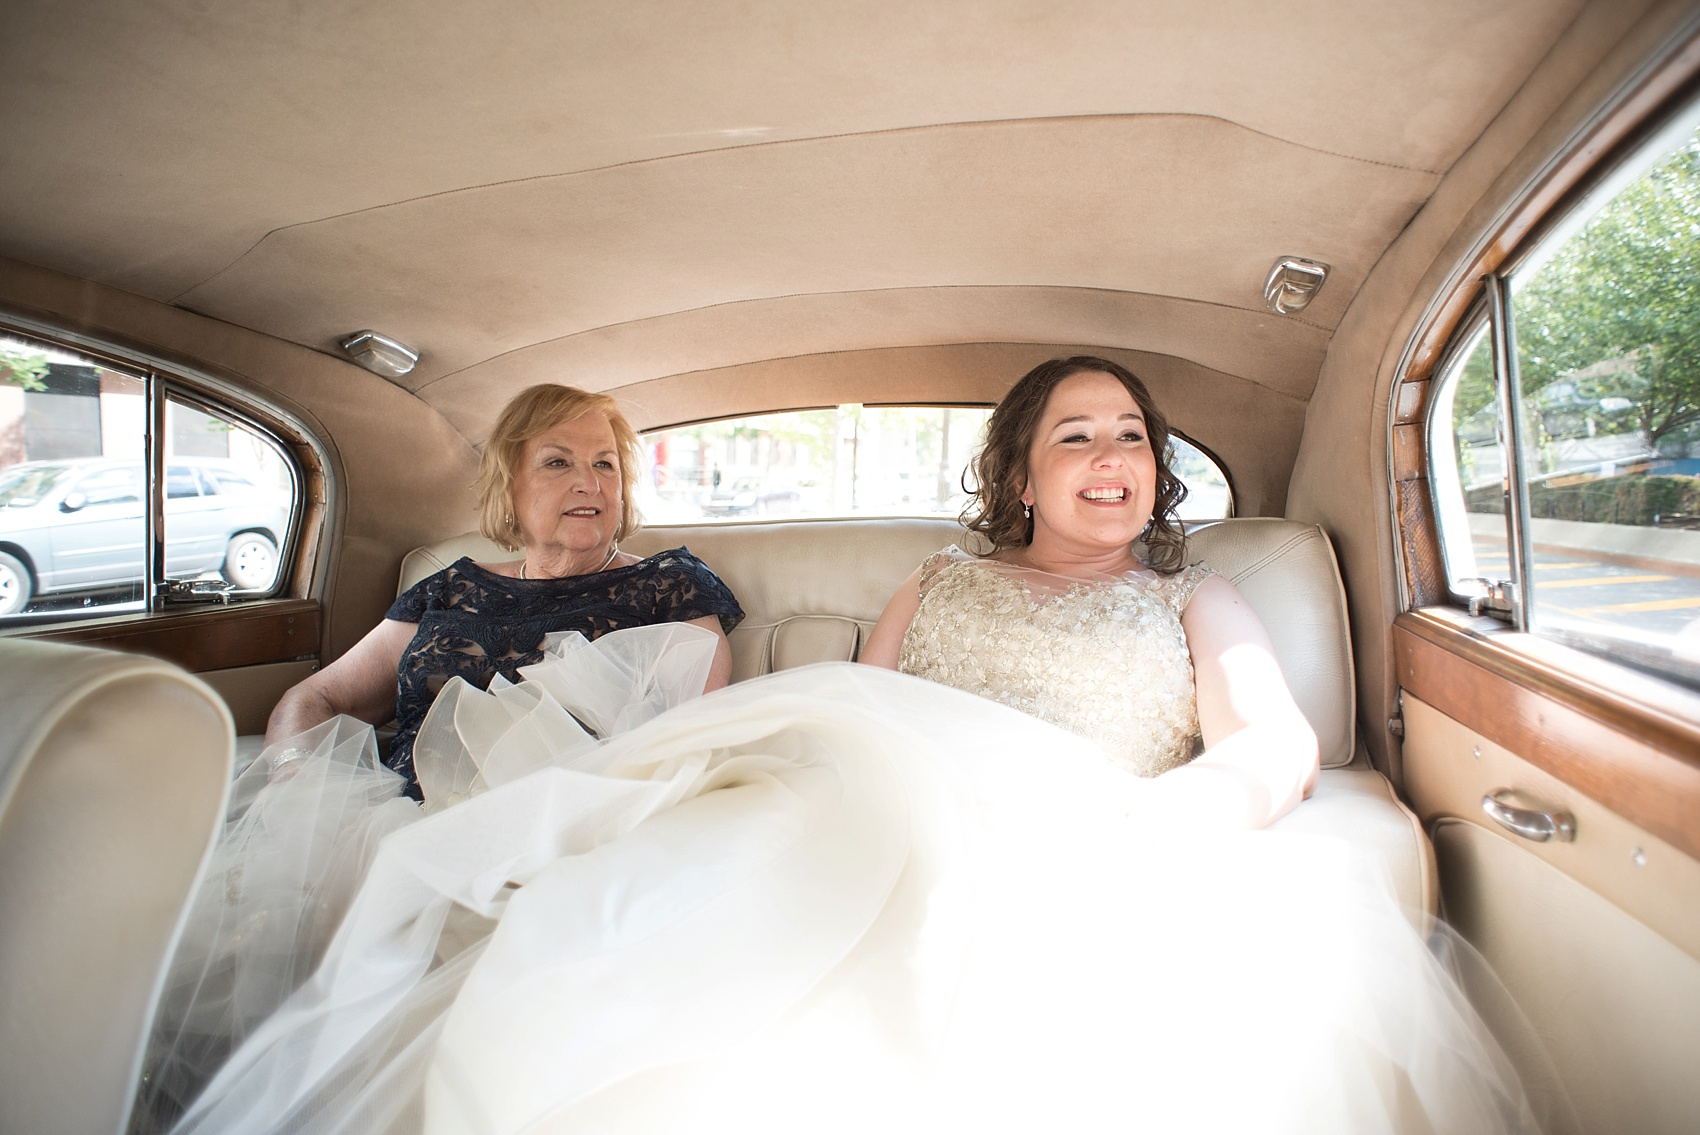 501 Union lesbian wedding - vintage Rolls Royce transportation! Photos by Mikkel Paige Photography, in Brooklyn, NYC.